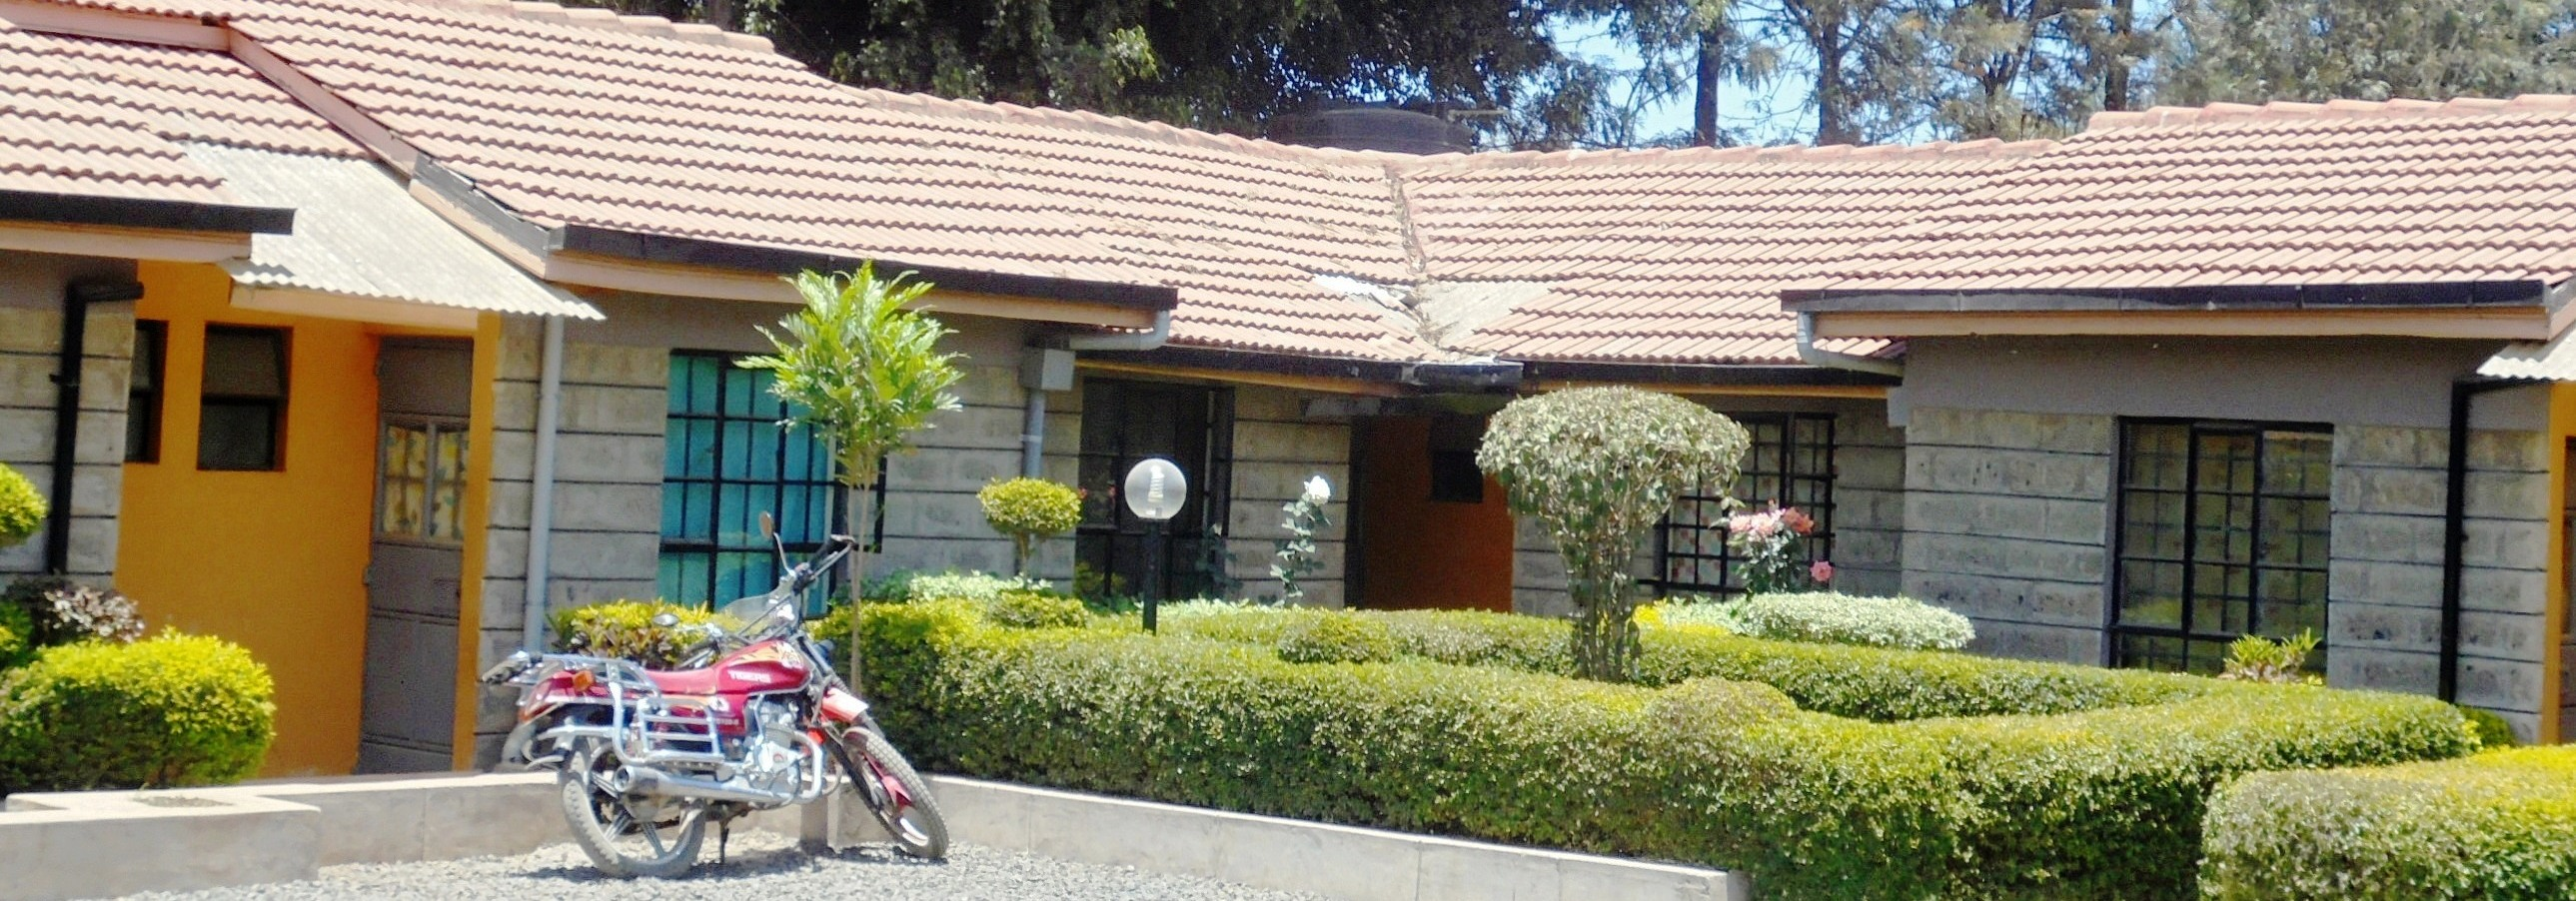 18 one bedroomed units, Ongata Rongai